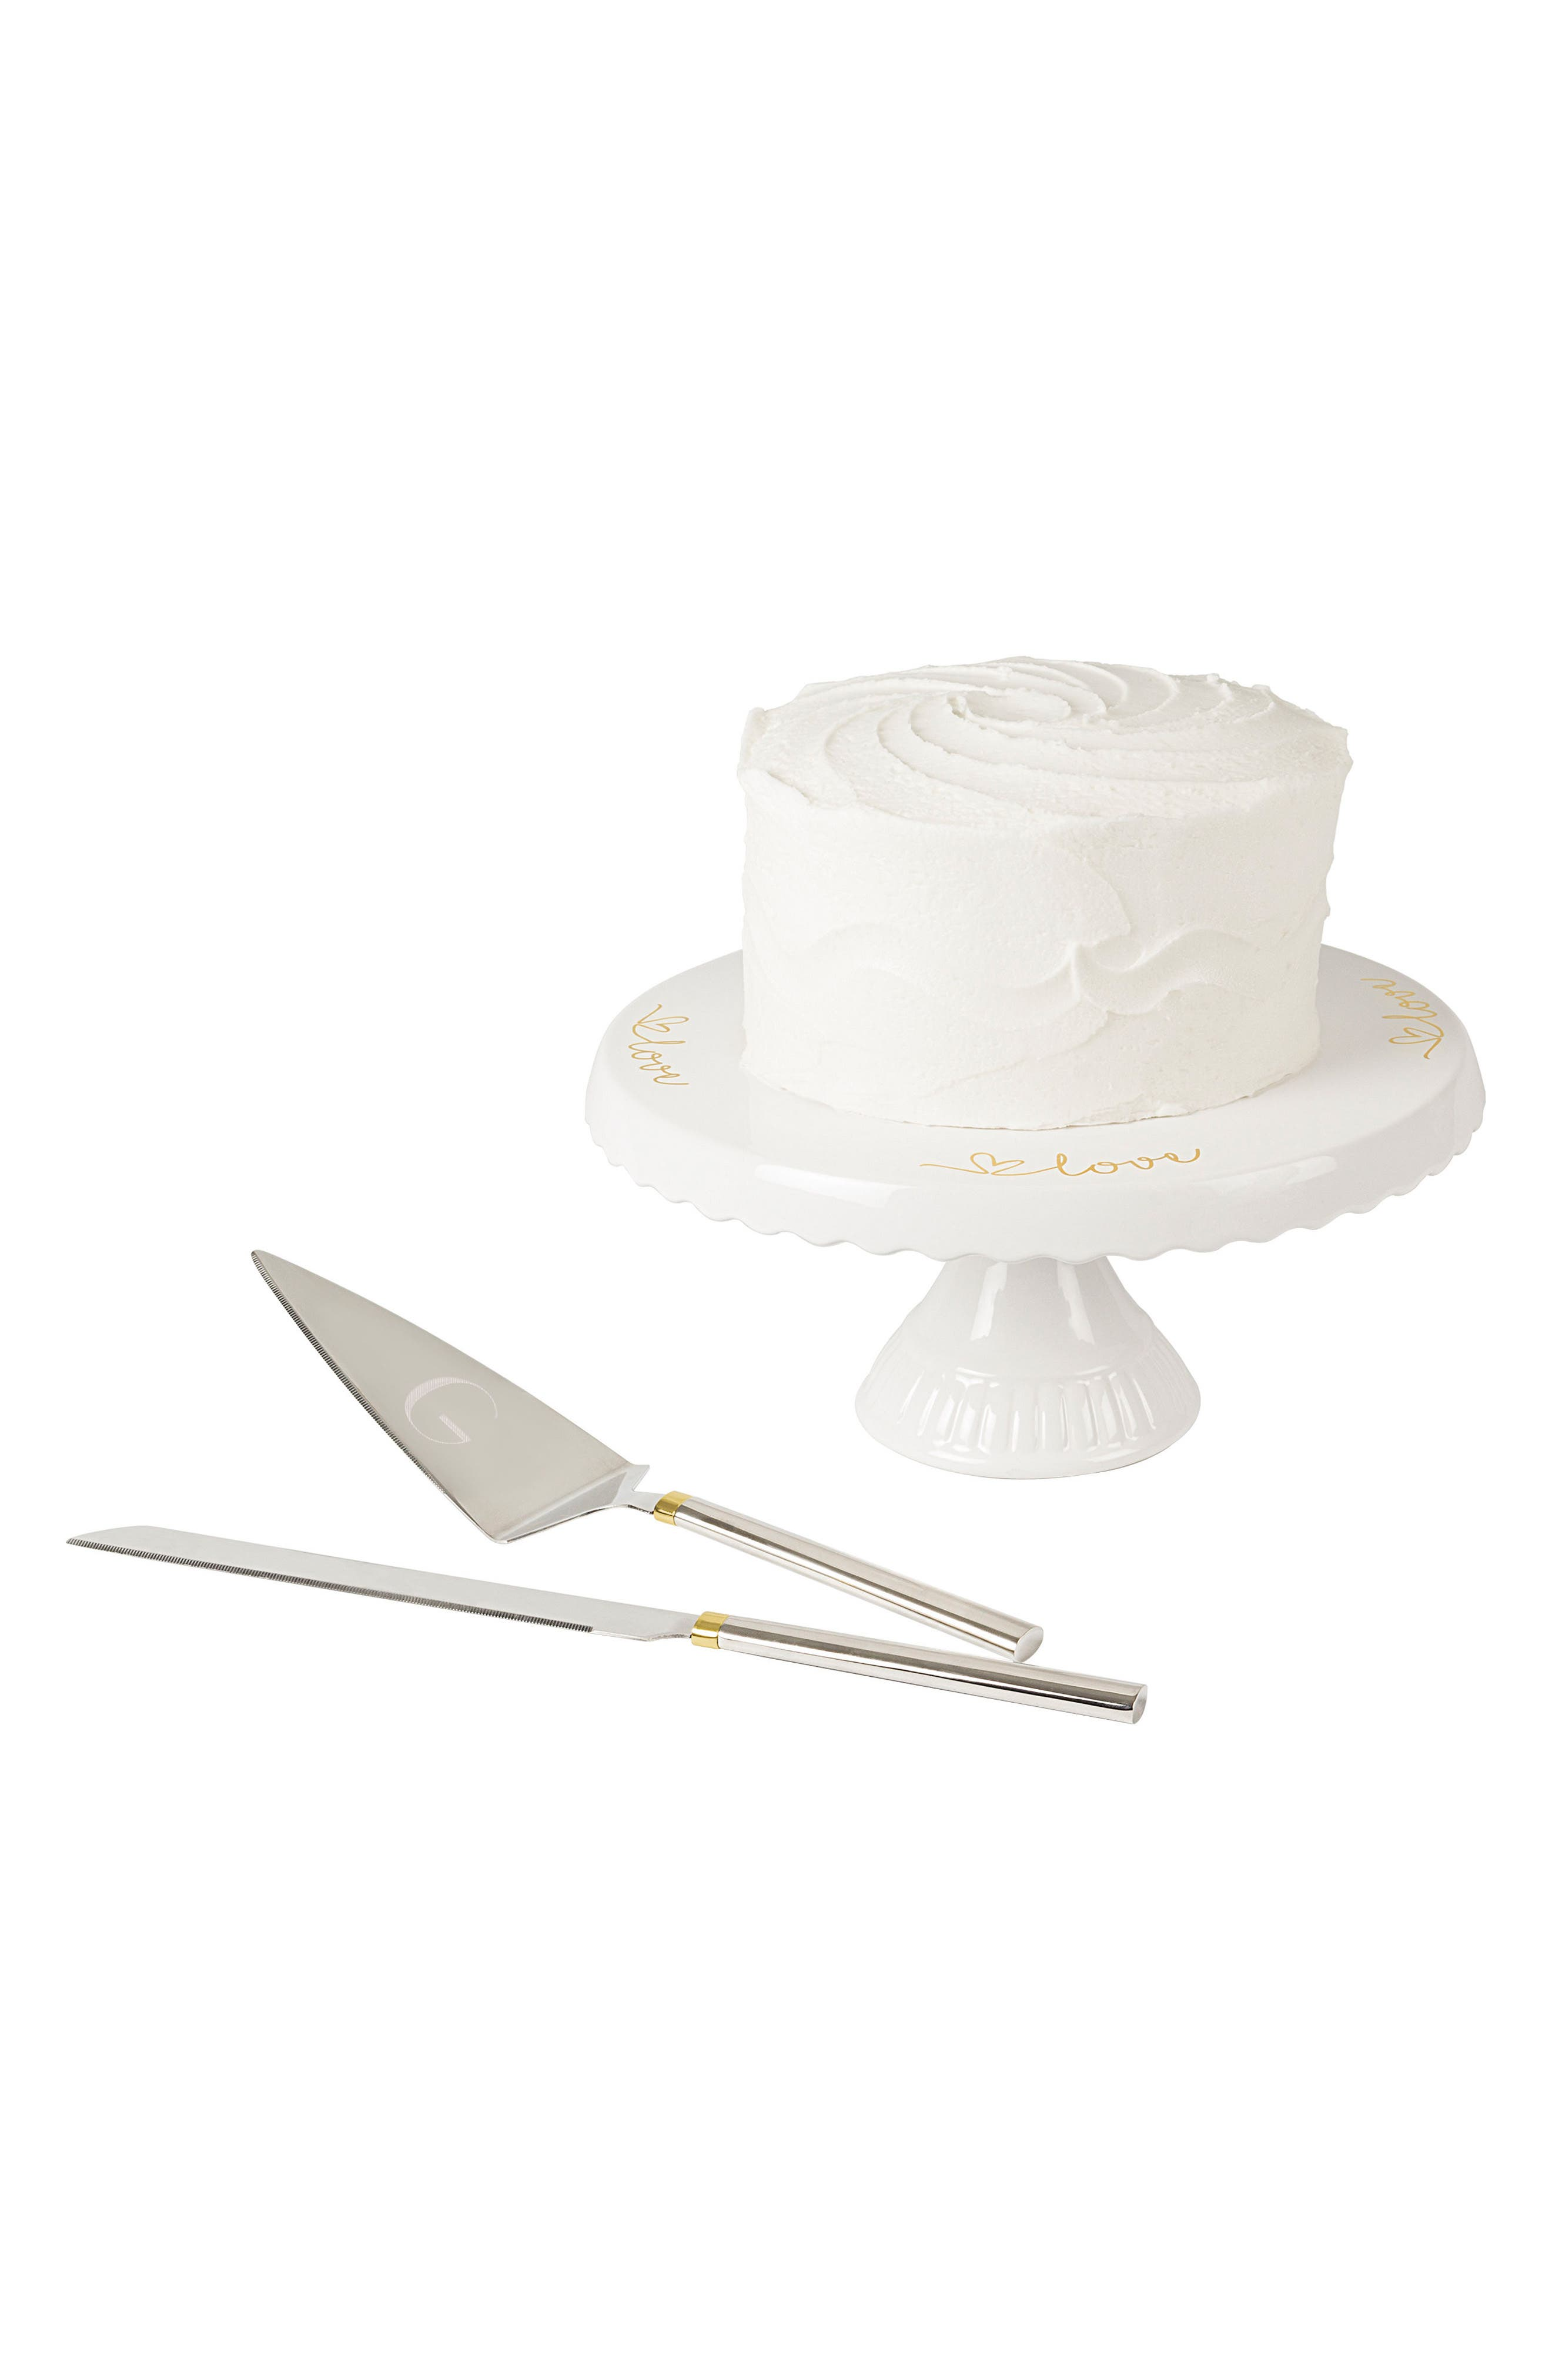 Love Monogram Cake Stand & Server Set,                             Main thumbnail 8, color,